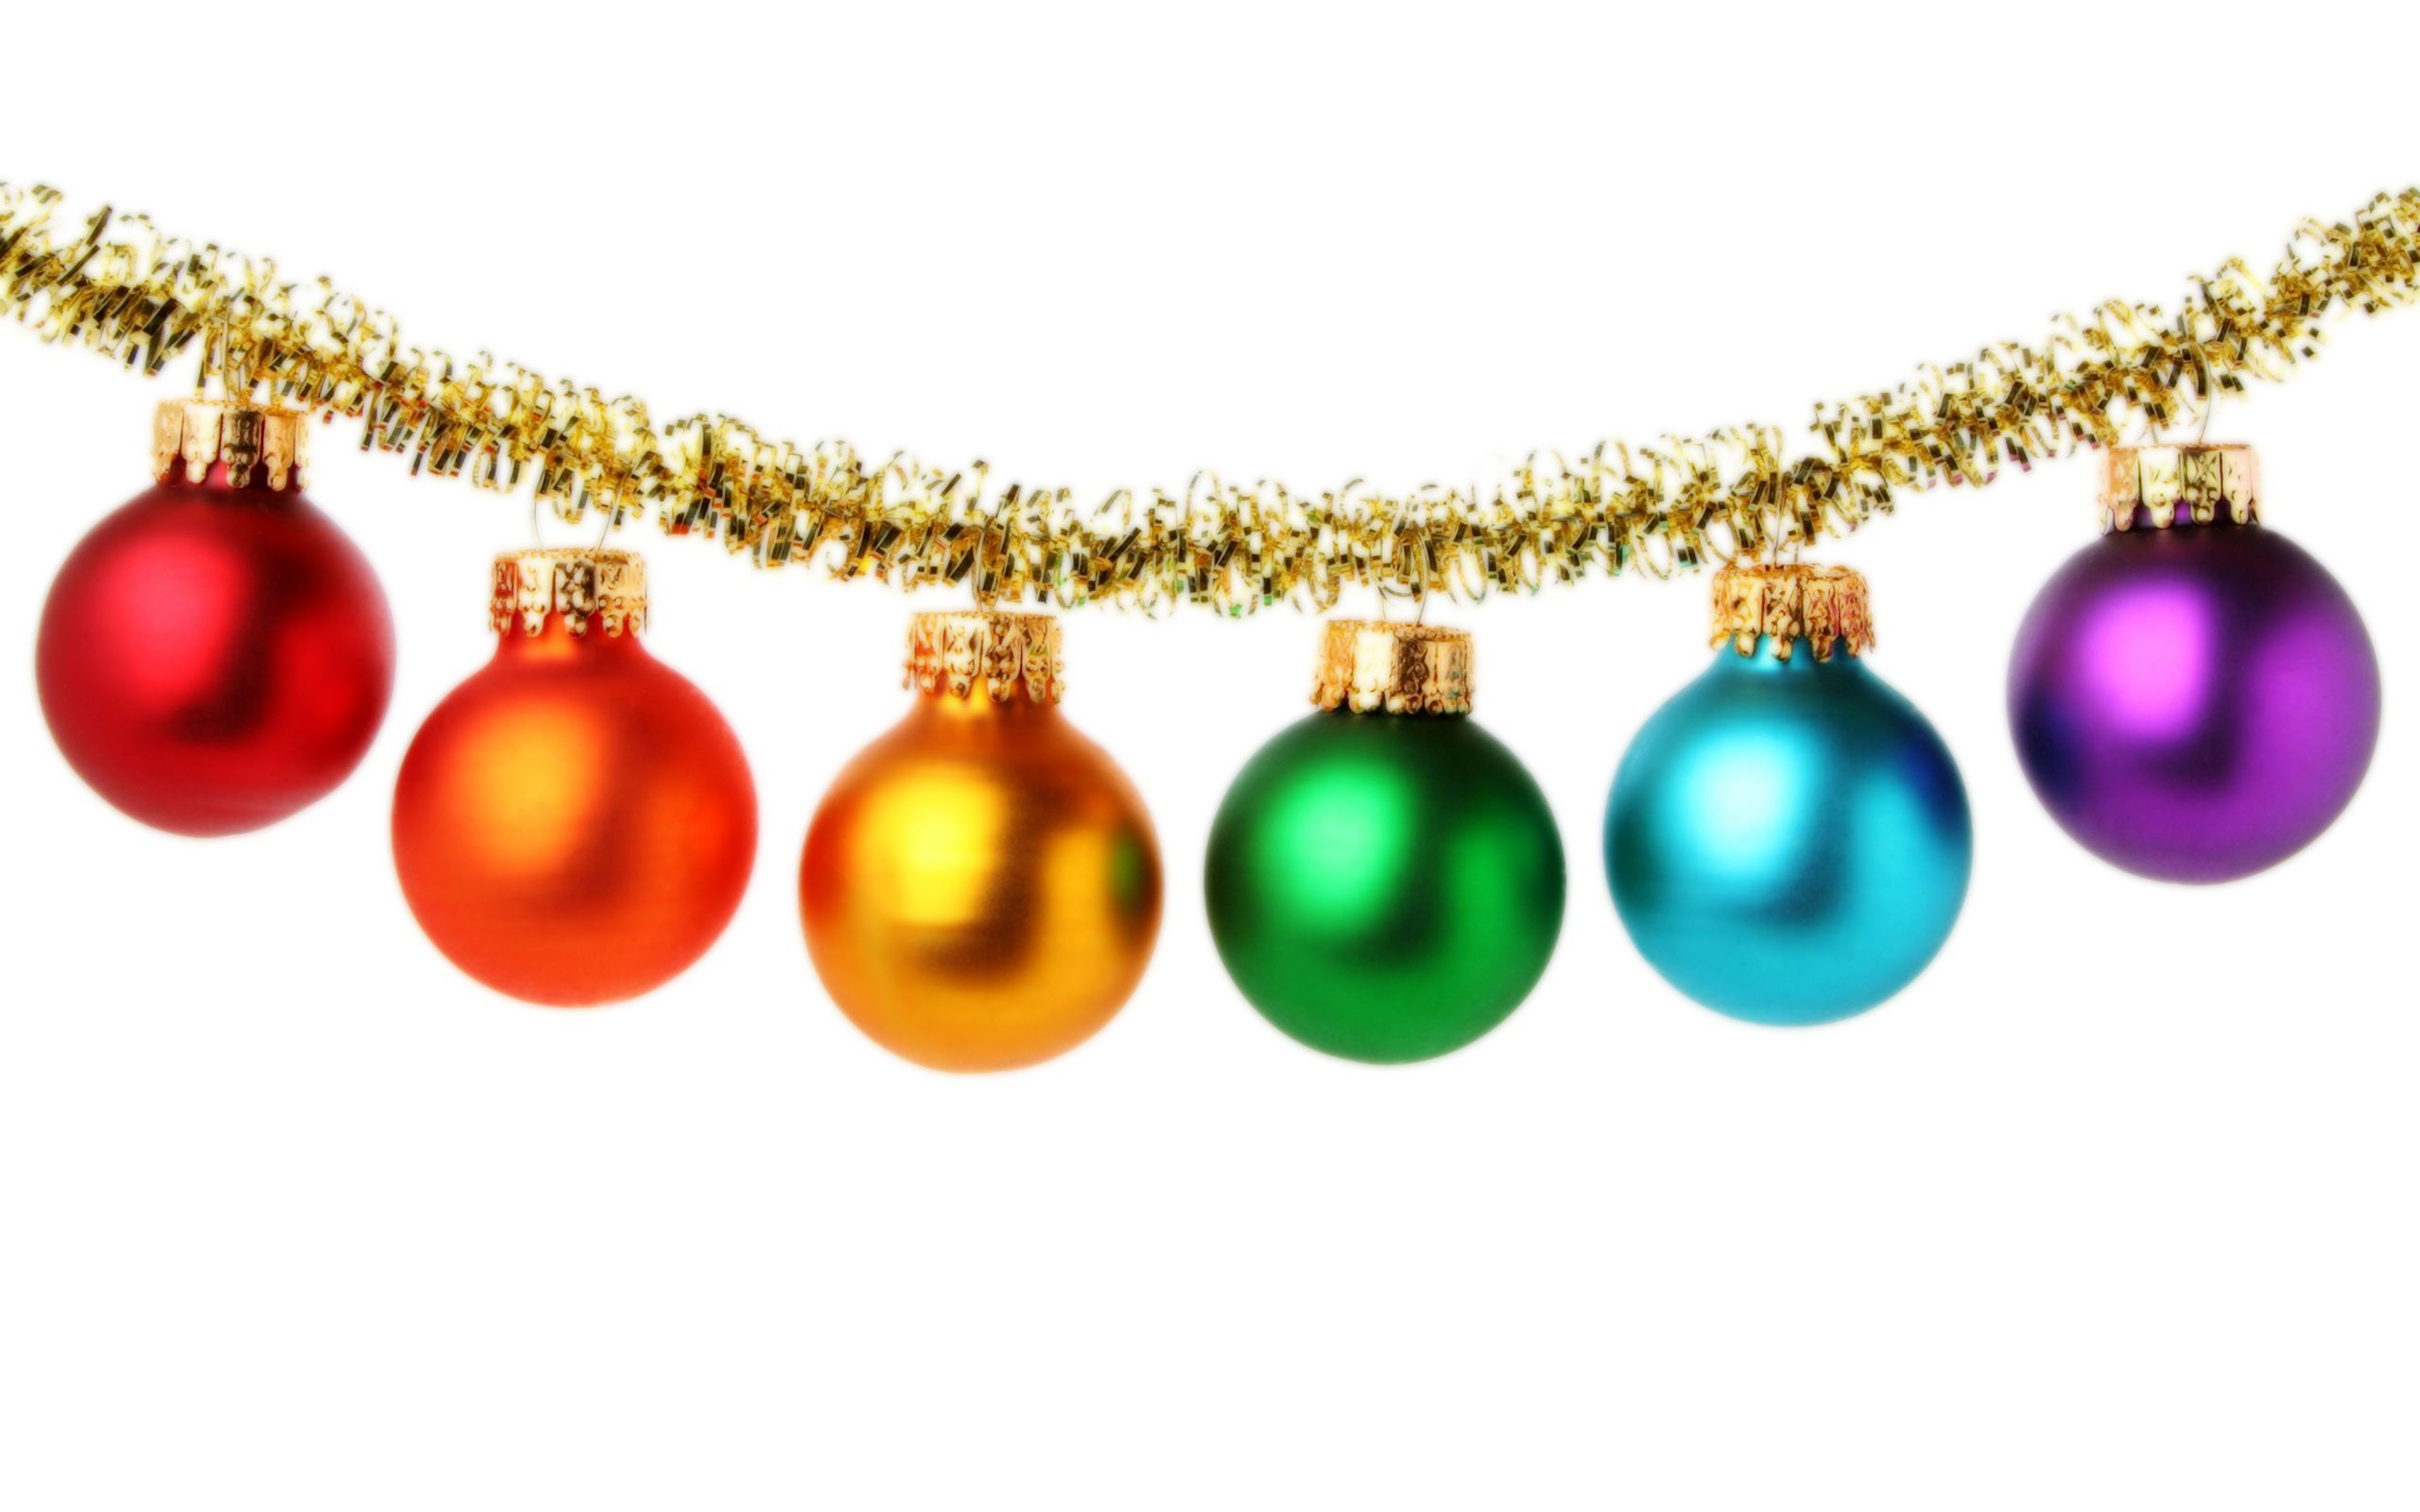 Christmas Decorations | Name:colorful christmas balls decoration.jpg